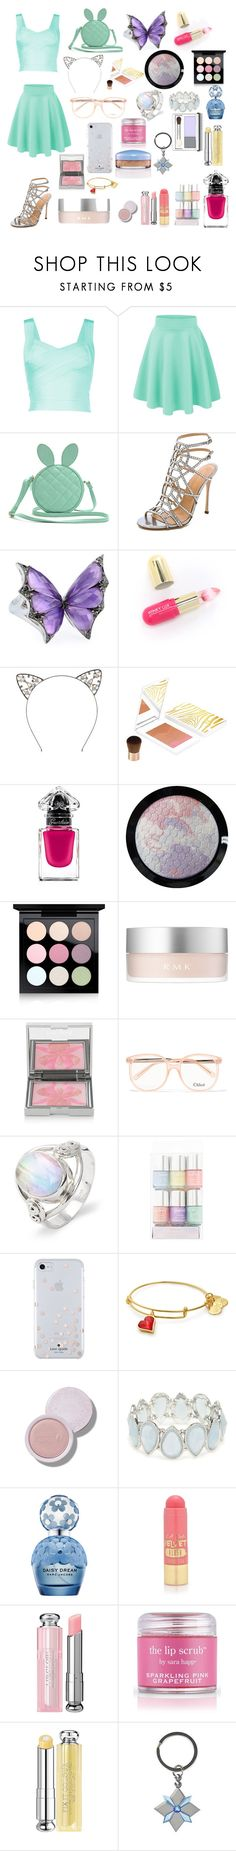 """""""ButterBunCat Lover"""" by chara-johnson ❤ liked on Polyvore featuring Sergio Rossi, Stephen Webster, Winky Lux, Sisley, Guerlain, MAC Cosmetics, RMK, Chloé, Kate Spade and Kim Rogers"""